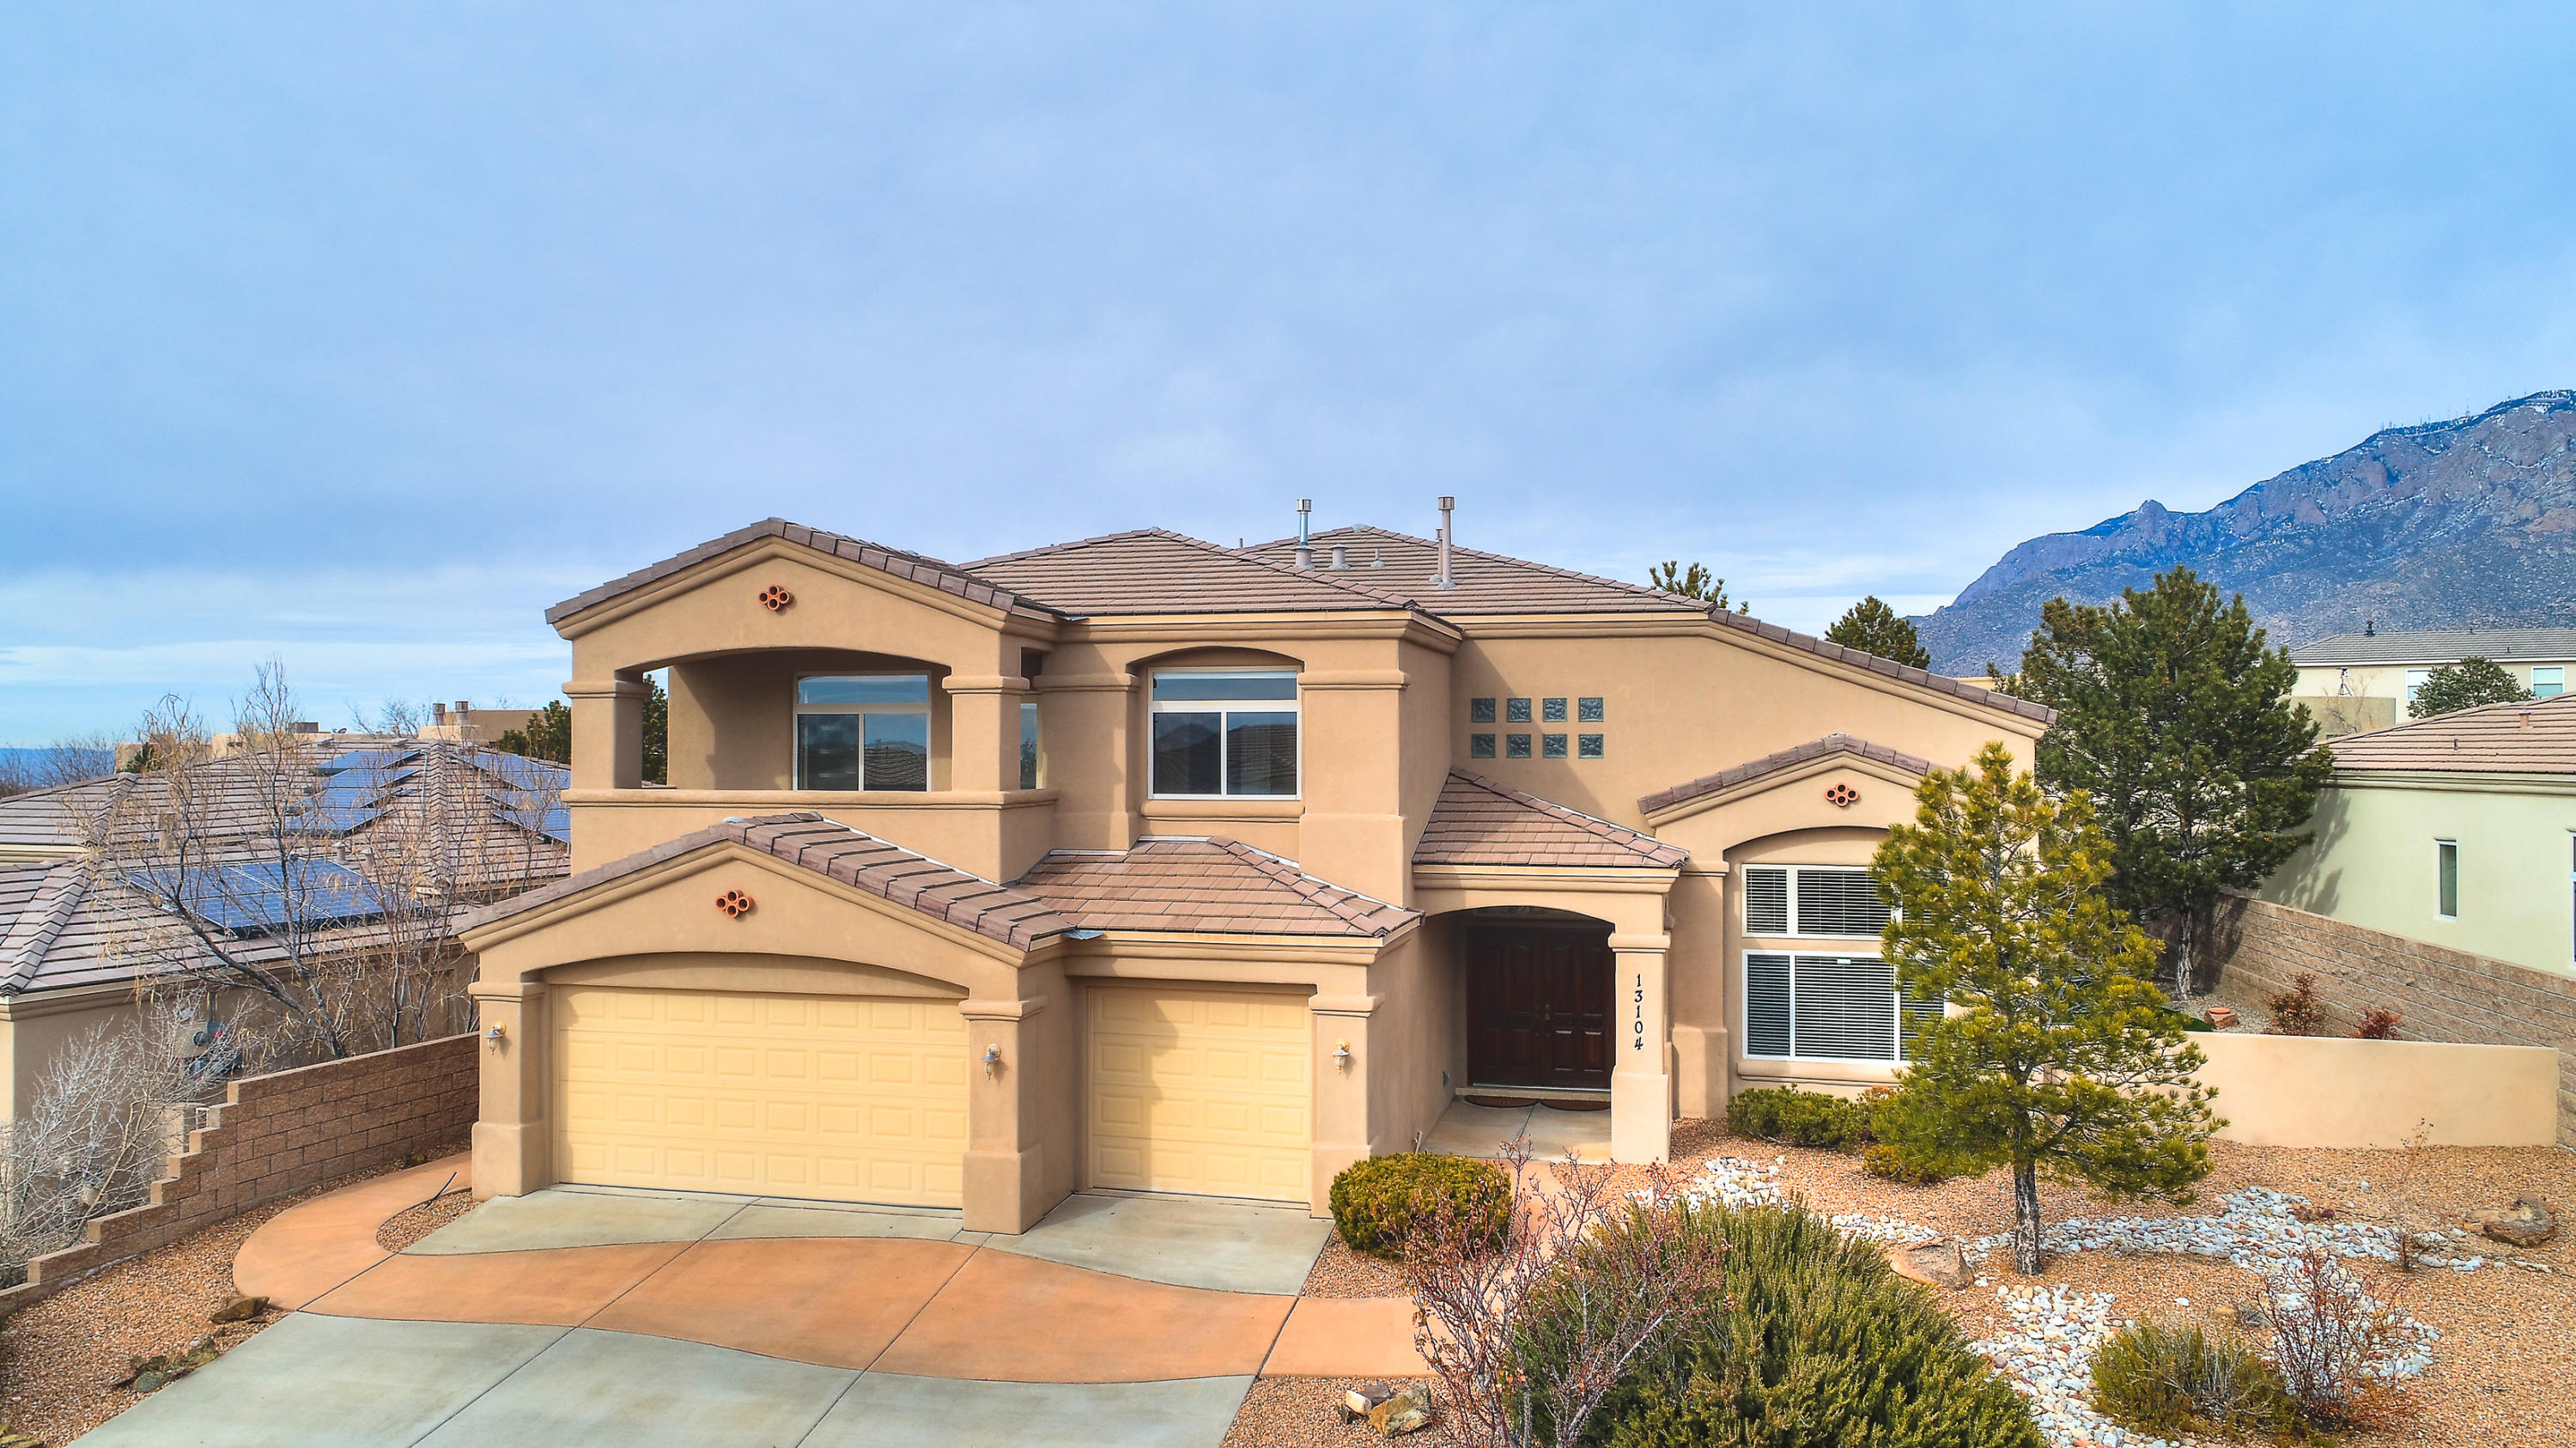 13104 Desert Moon Place, Albuquerque NM 87111